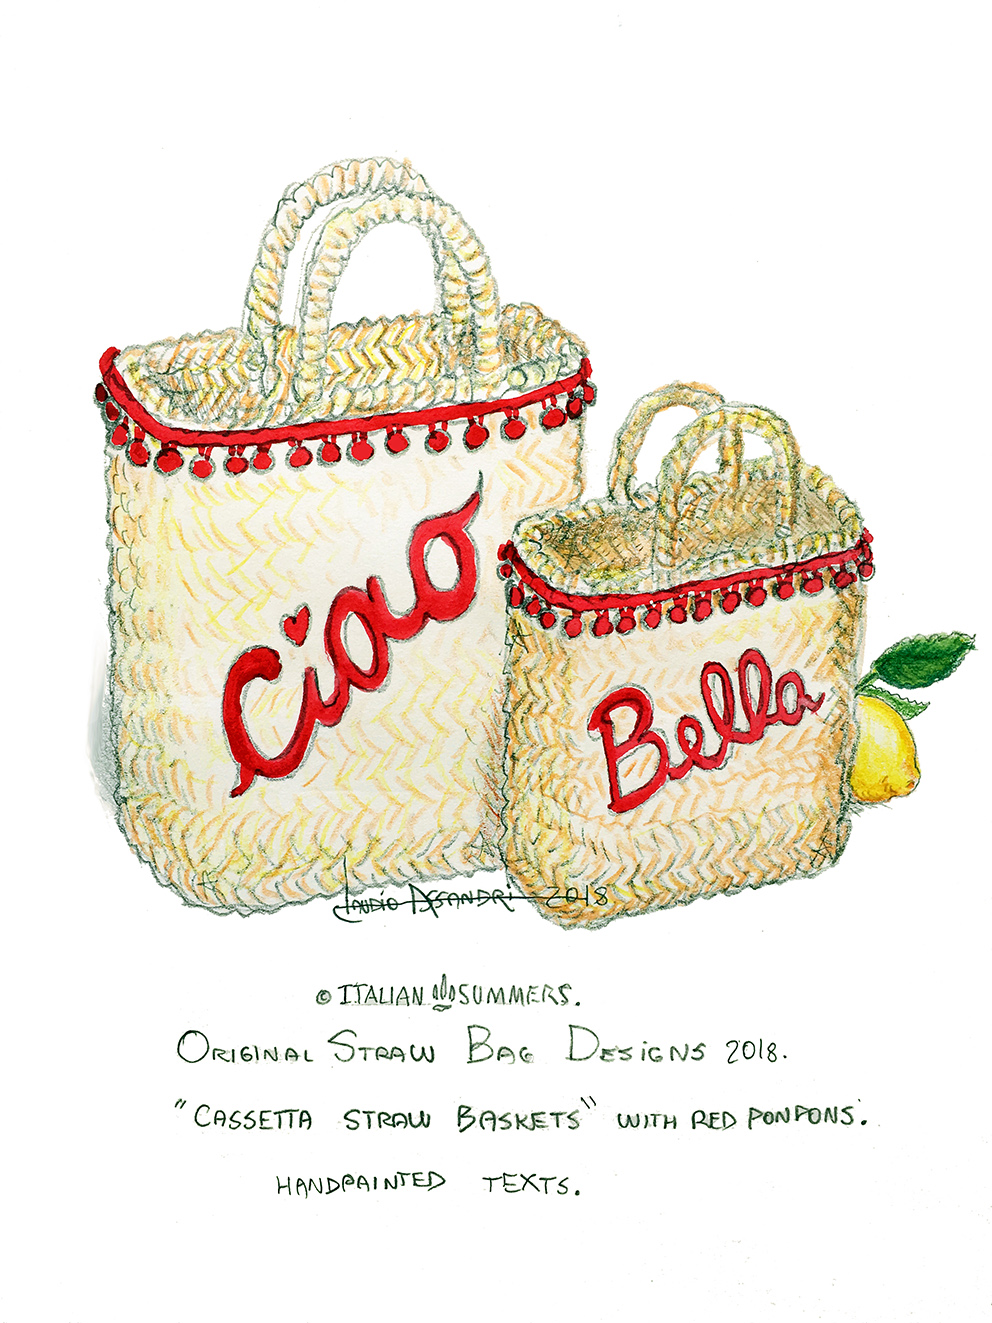 Customized bridal straw bags for Italian weddings by Italian Summers